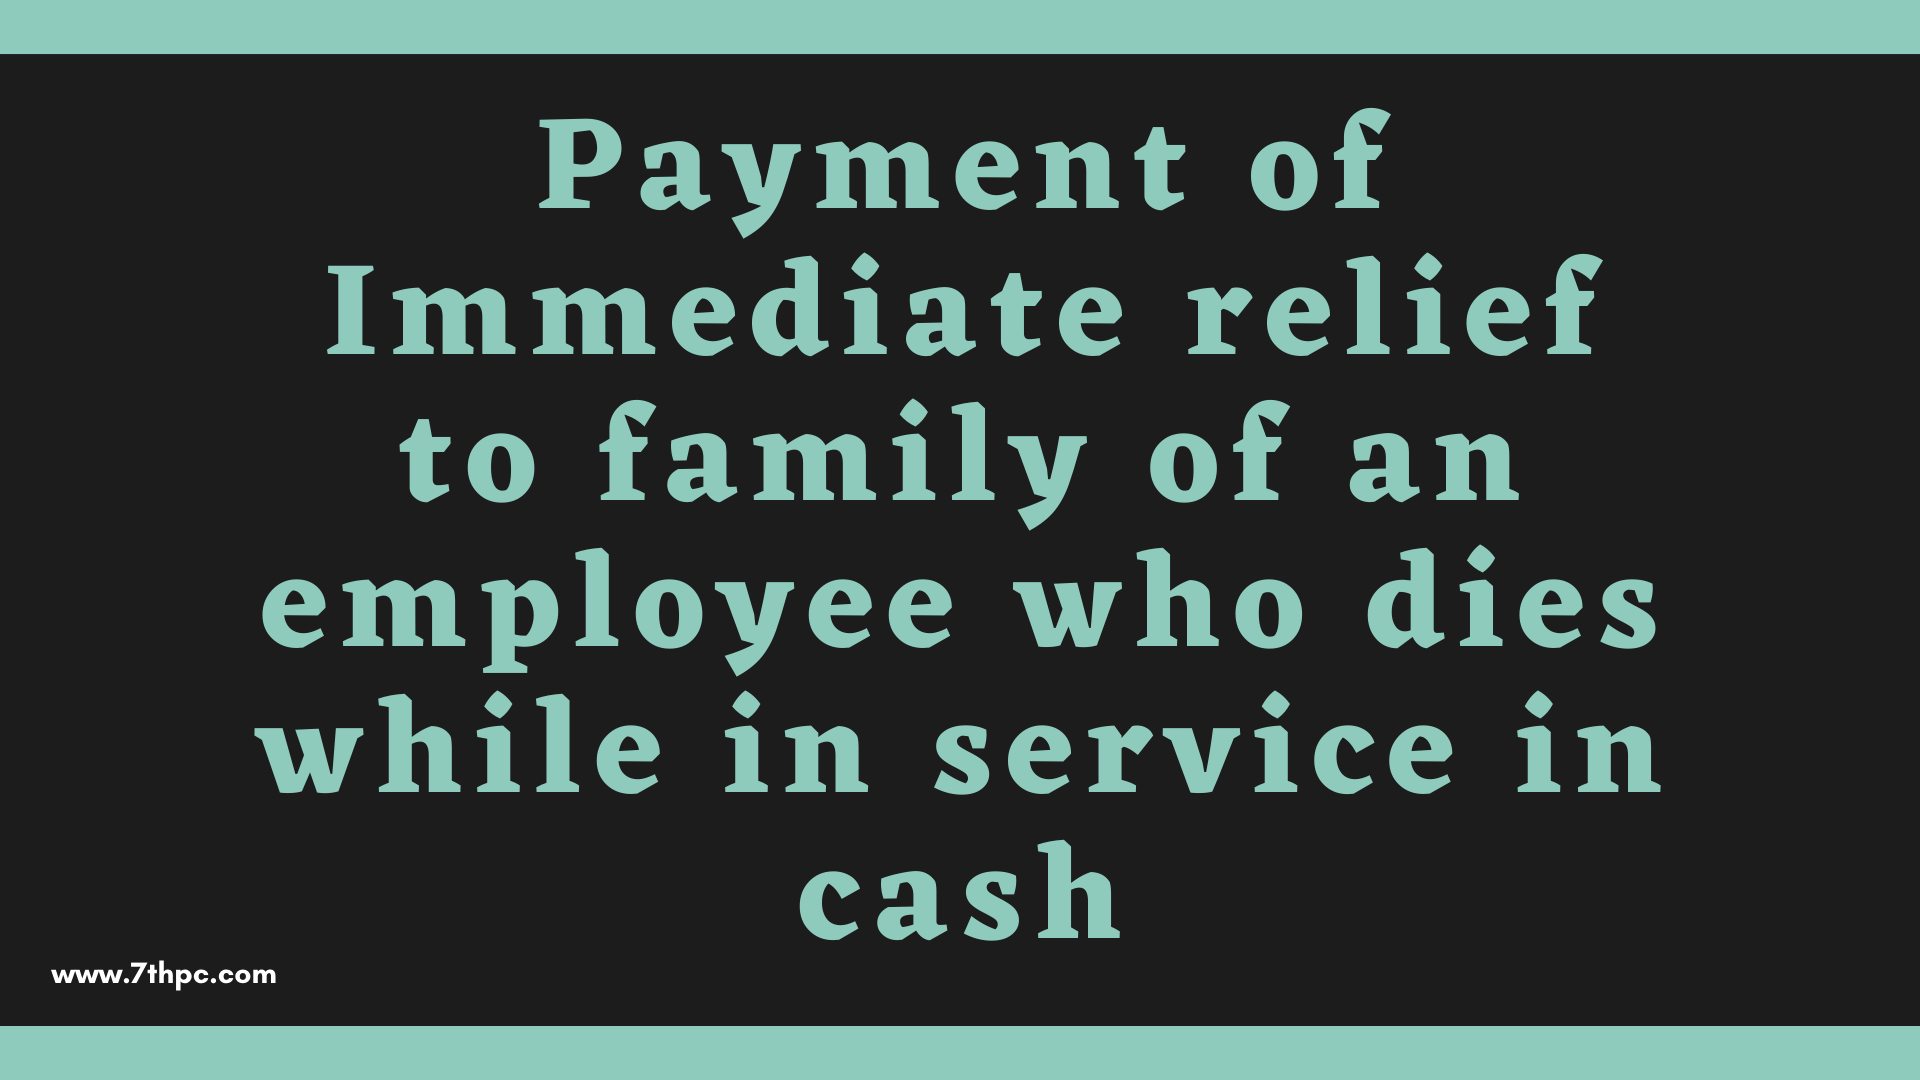 Payment of Immediate relief to family of an employee who dies while in service in cash